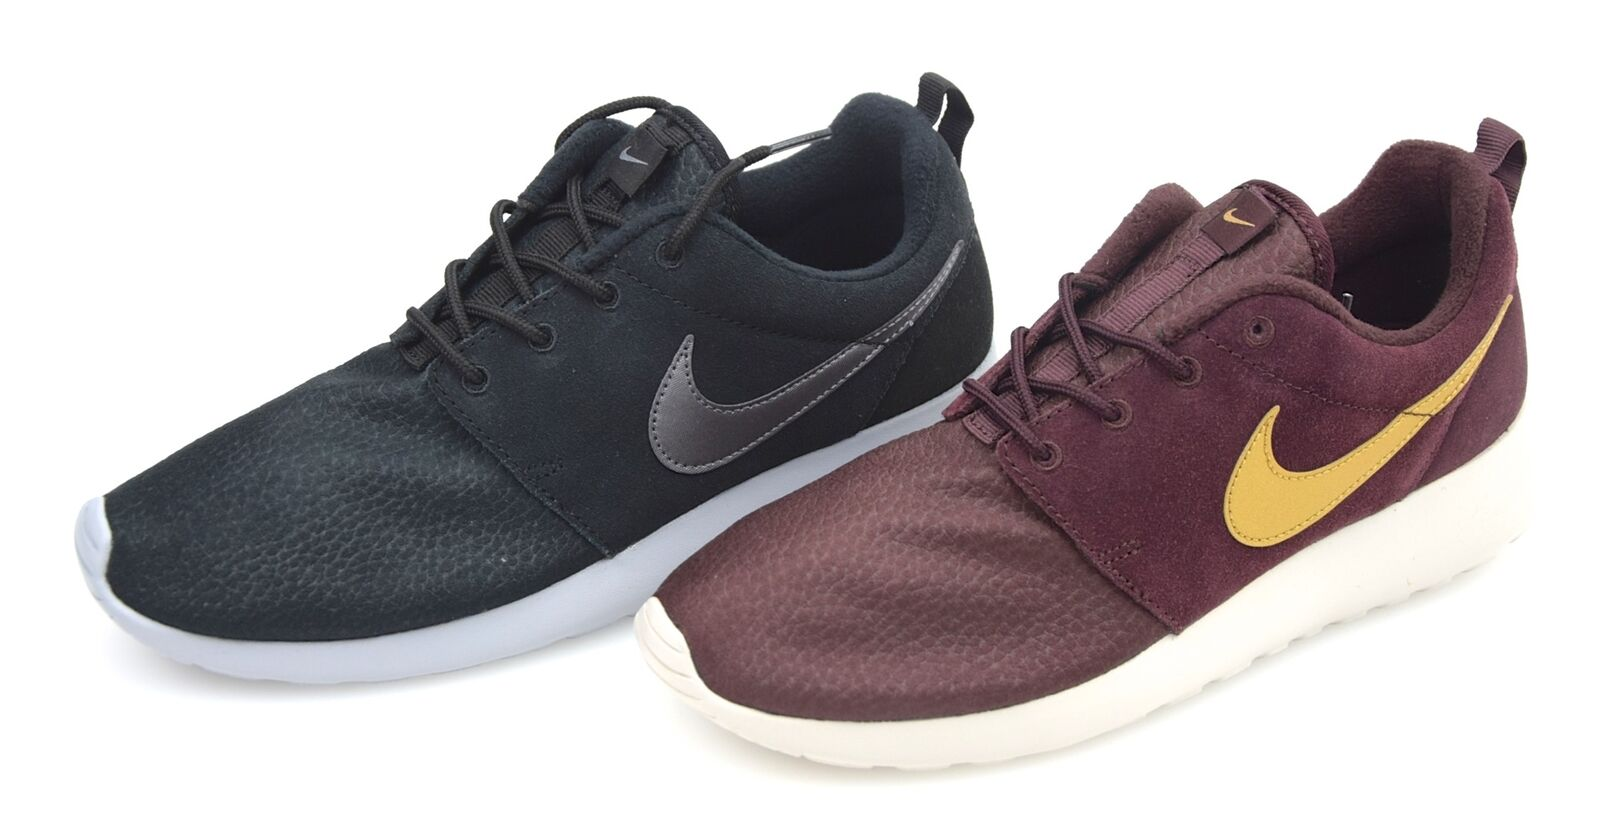 cheap for discount fa95a 847b5 NIKE MAN SNEAKER SHOES SPORTS SPORTS SPORTS CASUAL FREE TIME CODE ROSHE ONE  SUEDE 685280 f2e8b8